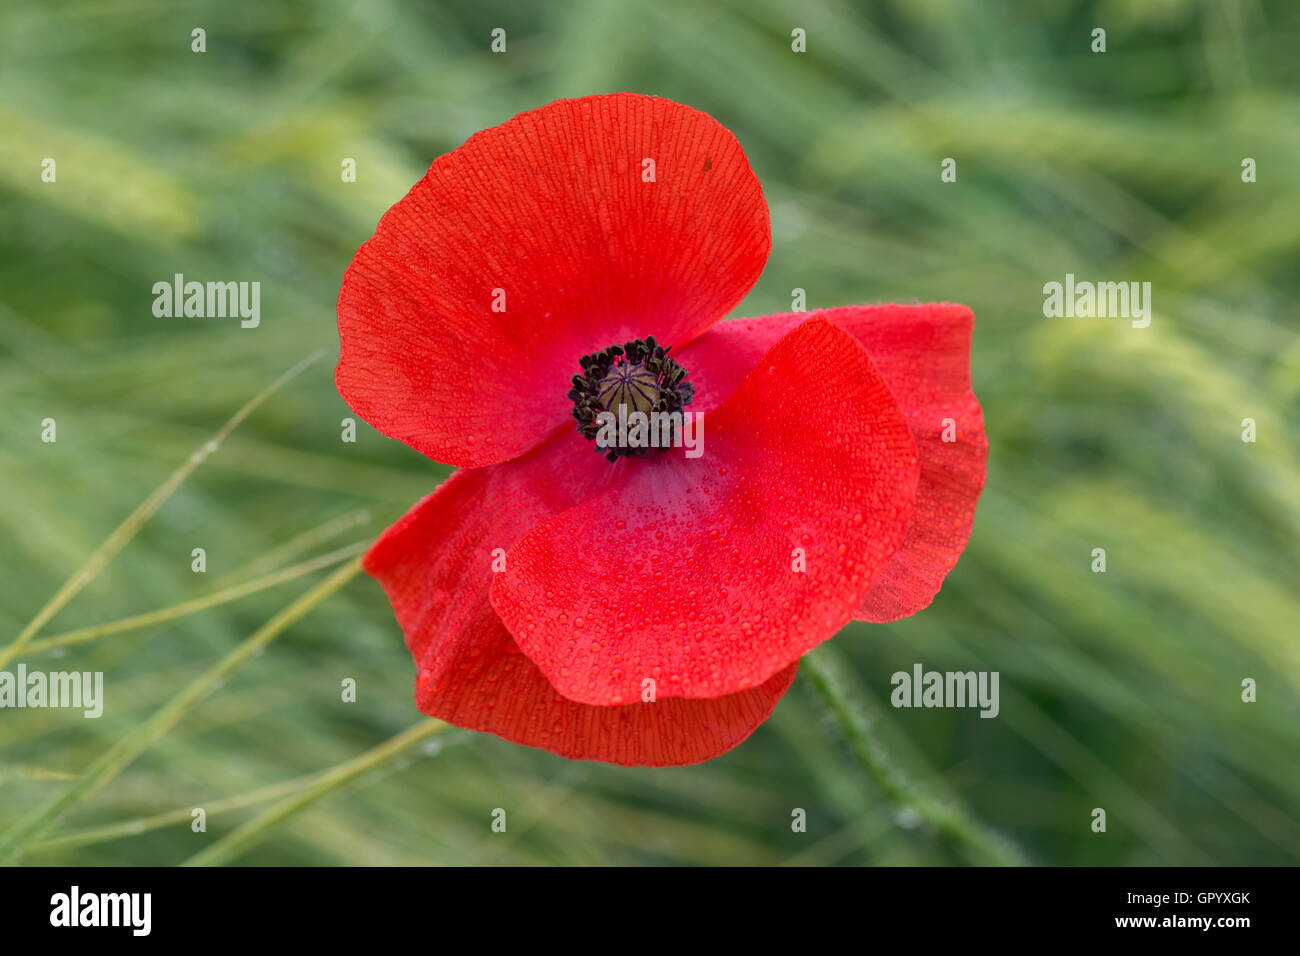 A single corn poppy, Papaver rhoeas, flowering above a crop of barley in green ear on a wet day. Stock Photo